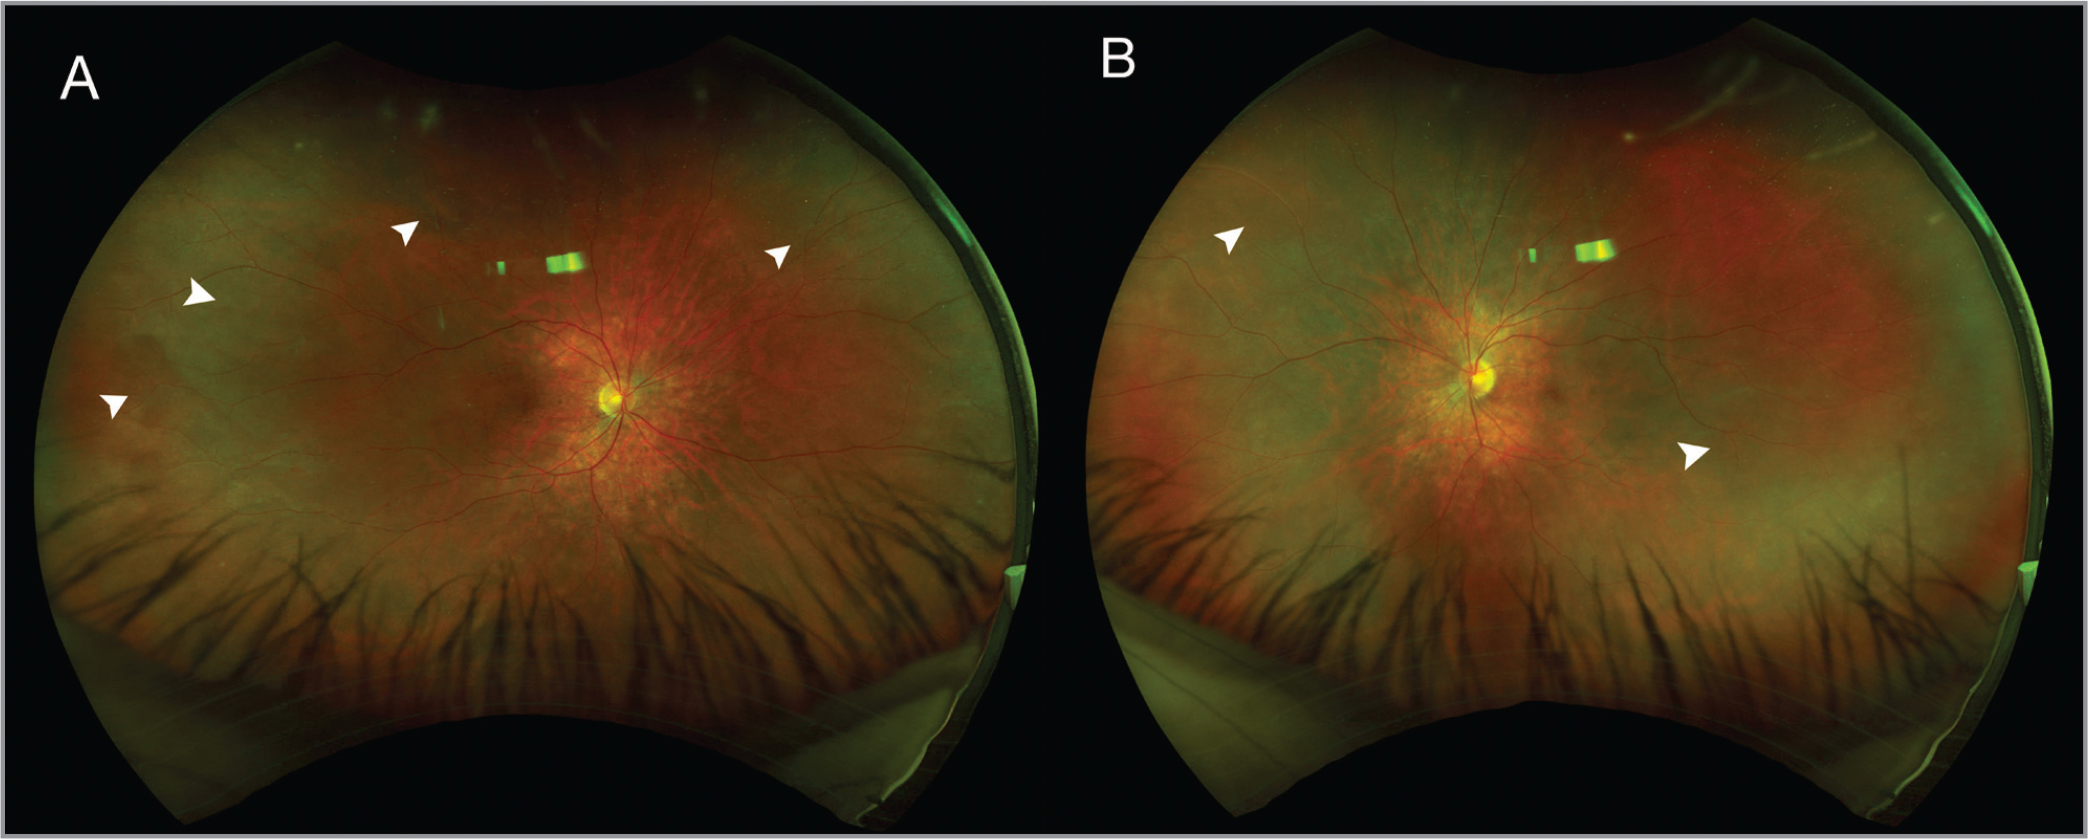 Color fundus photographs revealing slightly hyperemic discs and large multifocal serous retinal detachments bilaterally, marked by arrowheads. (A) Right eye. (B) Left eye.